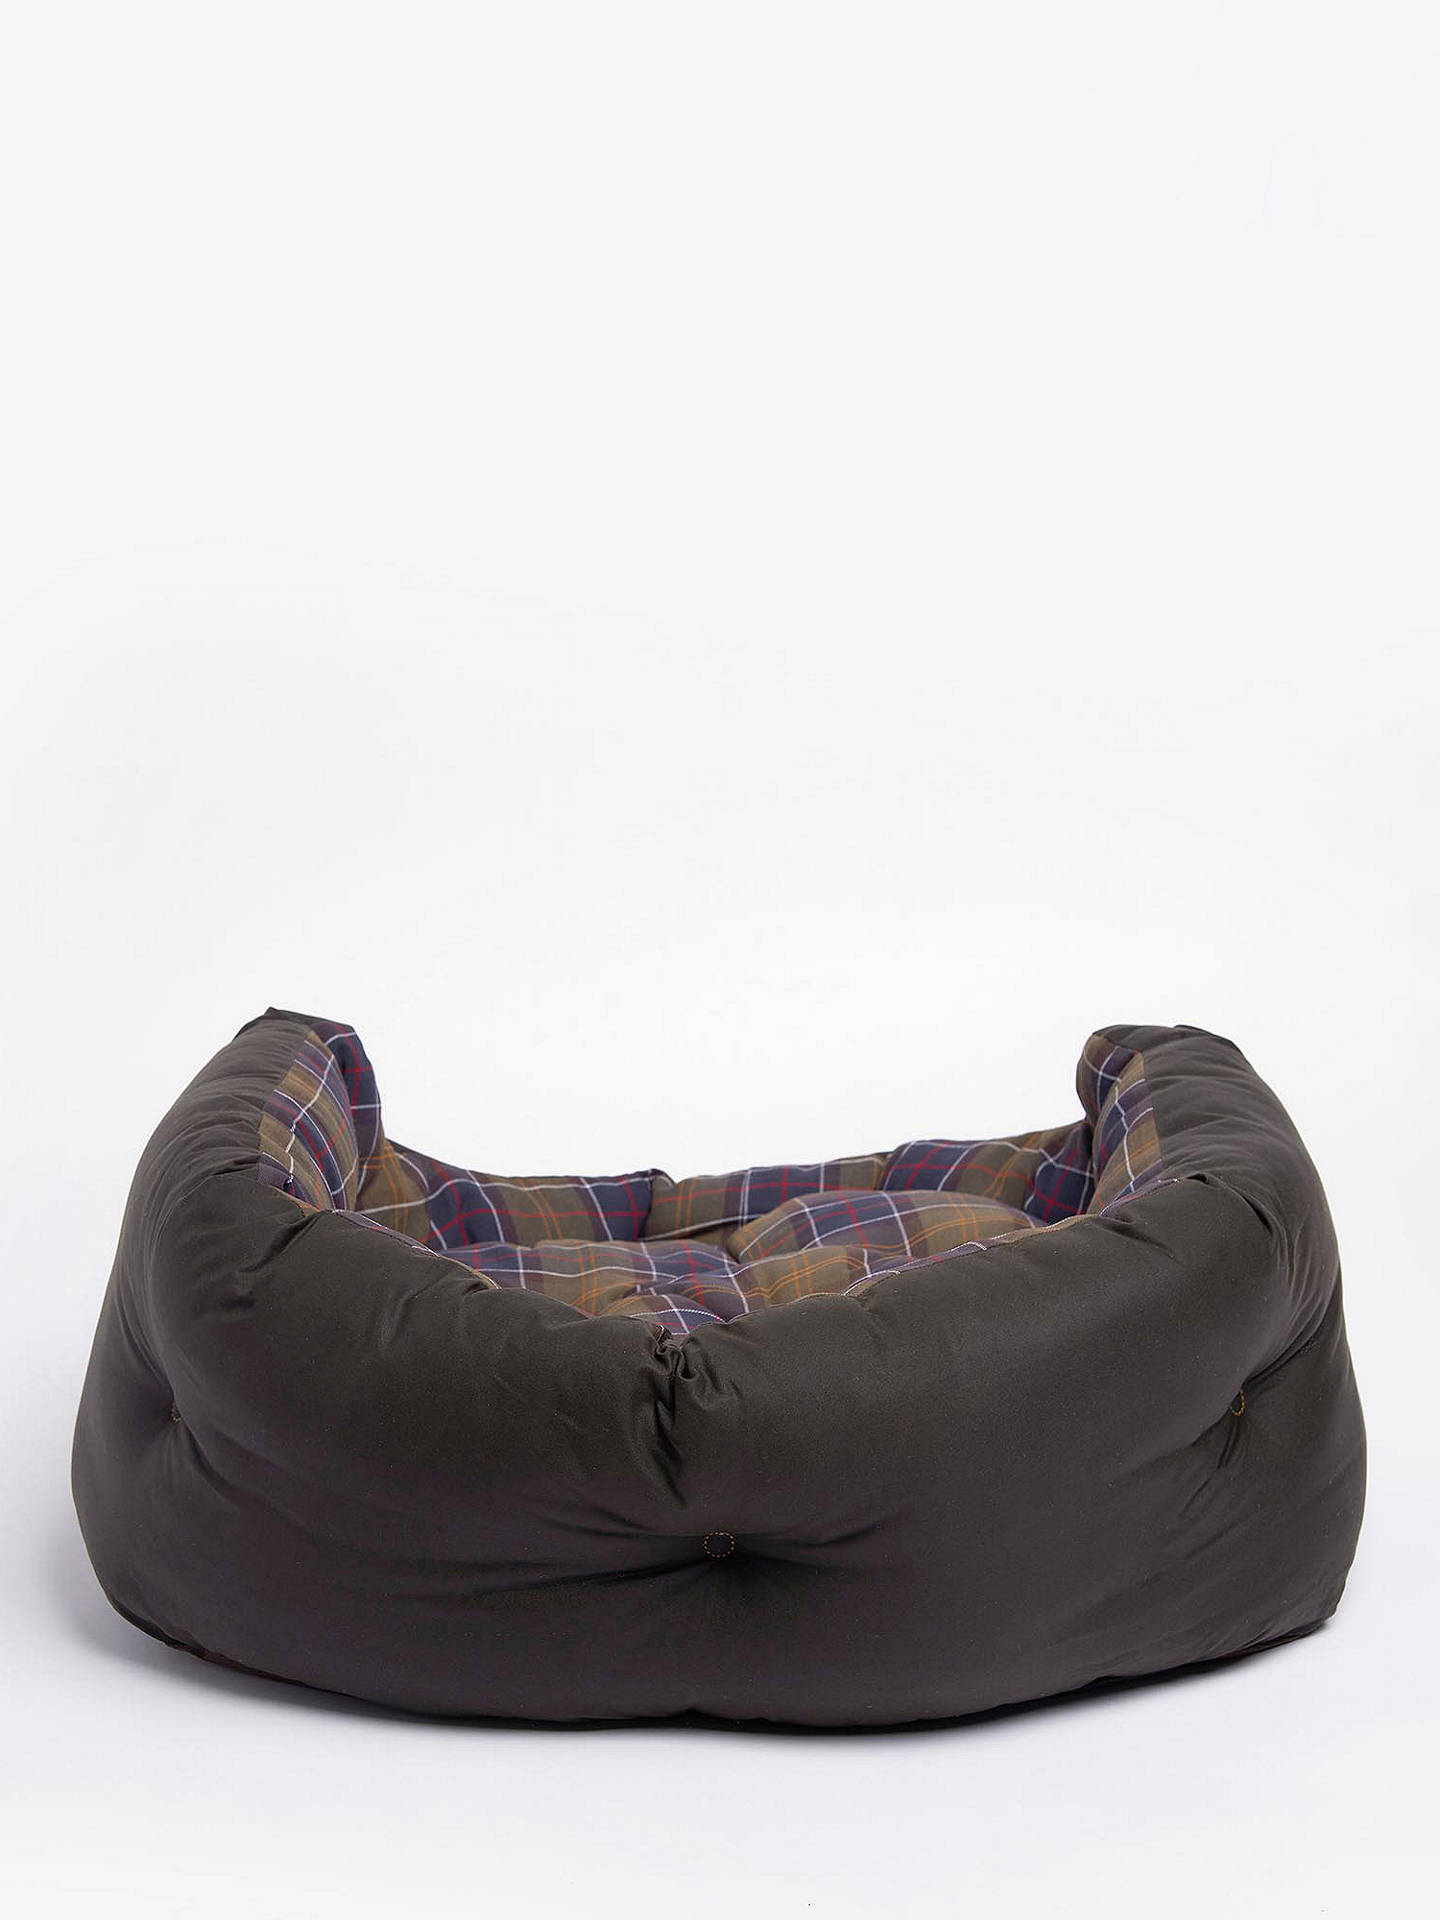 BuyBarbour Tartan Quilted Dog Bed Online at johnlewis.com